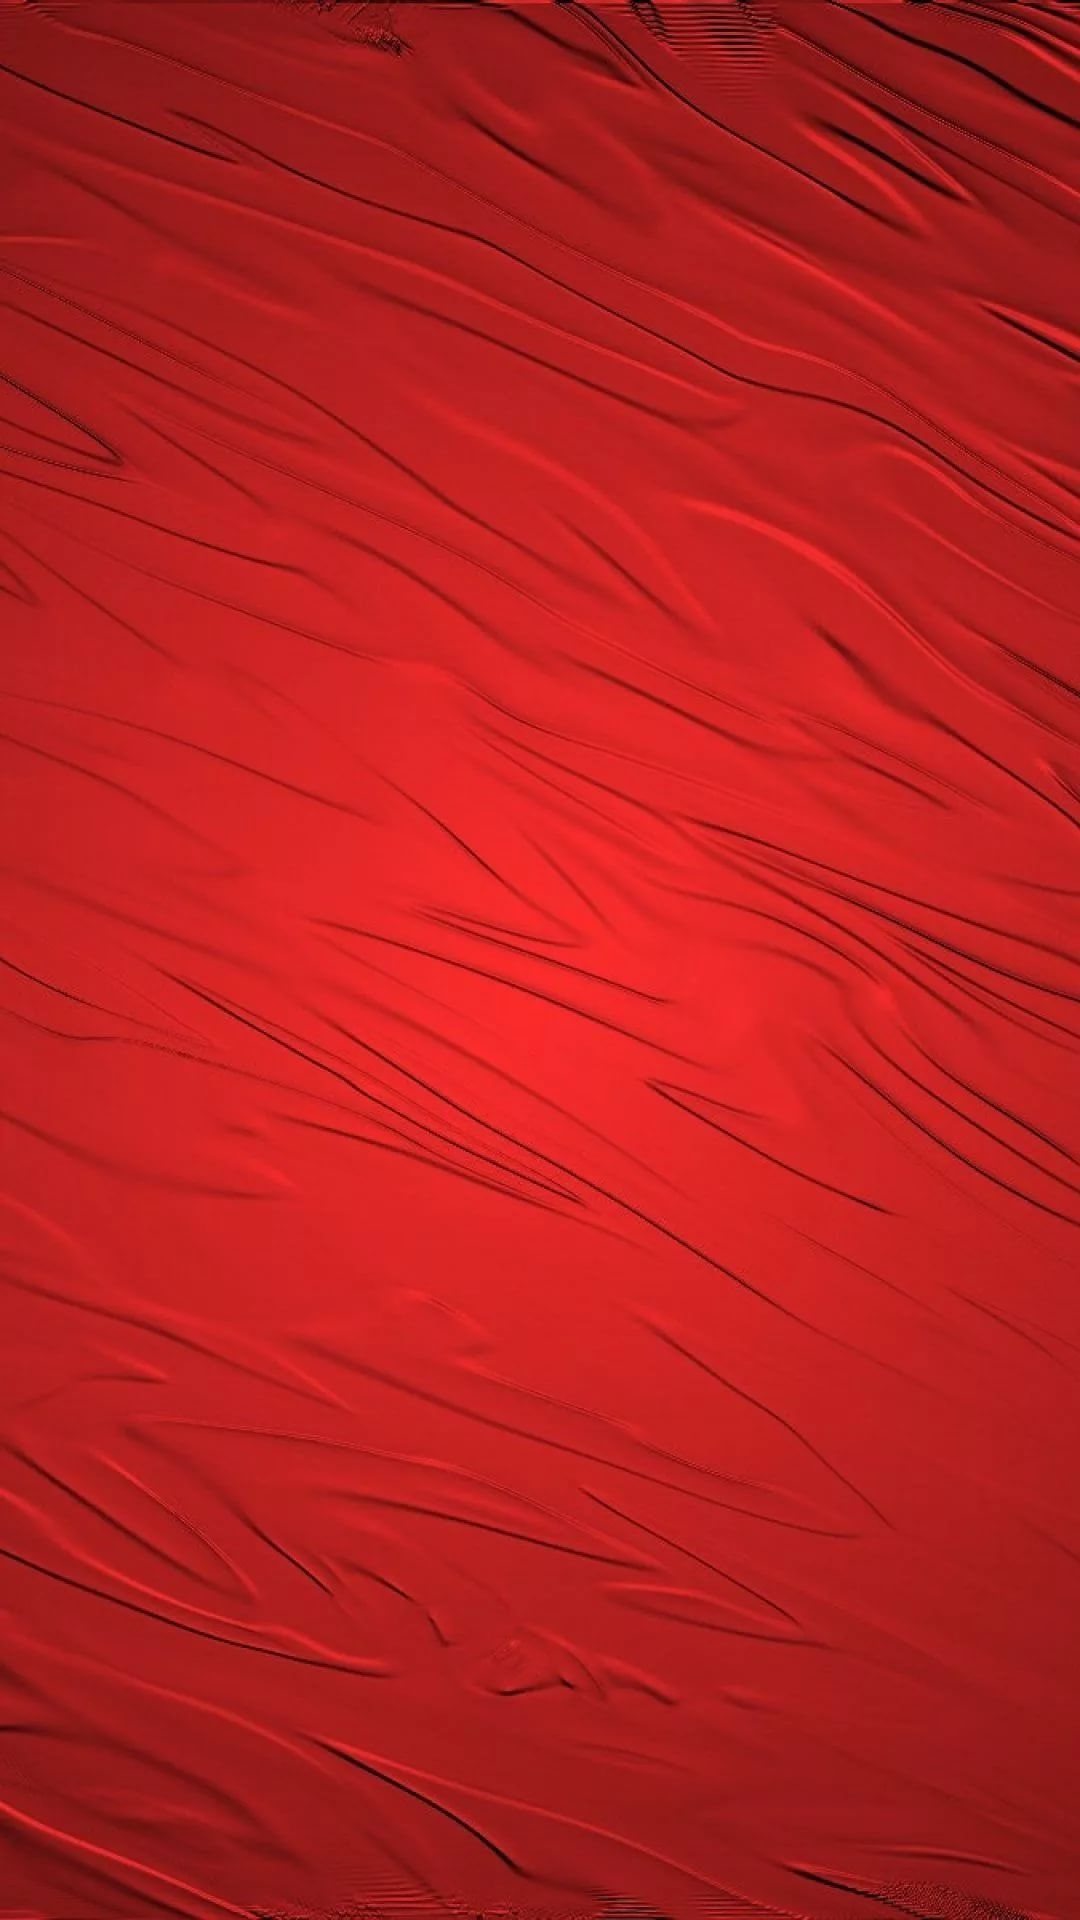 Red Hd phone wallpaper